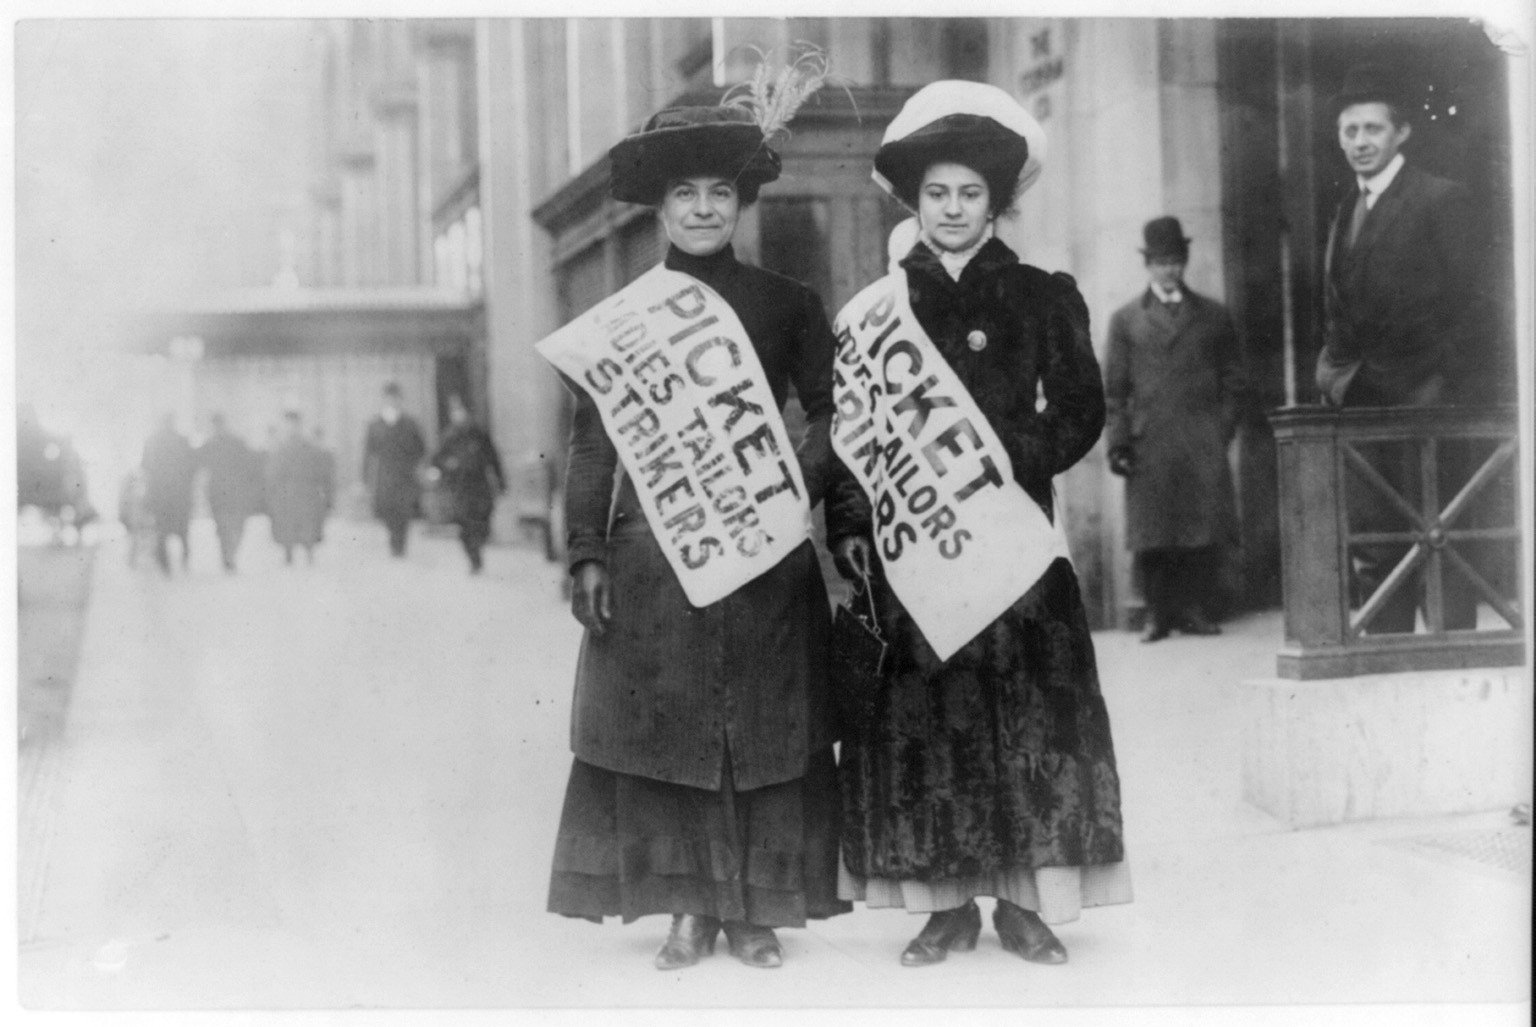 Two women picketing for garment workers rights in the early 1900s.